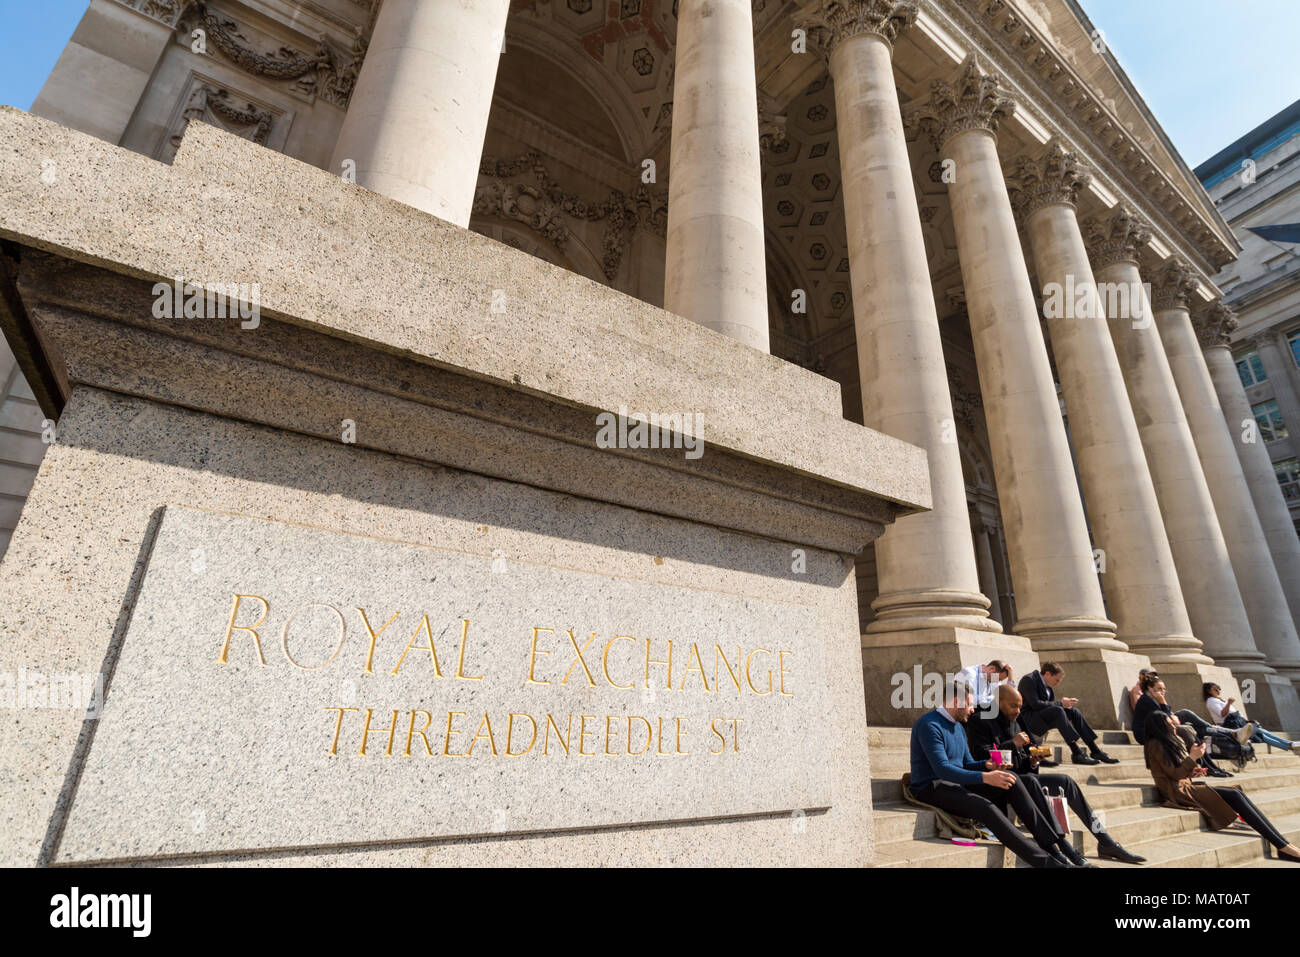 The Royal Exchange, City of London, UK - Stock Image